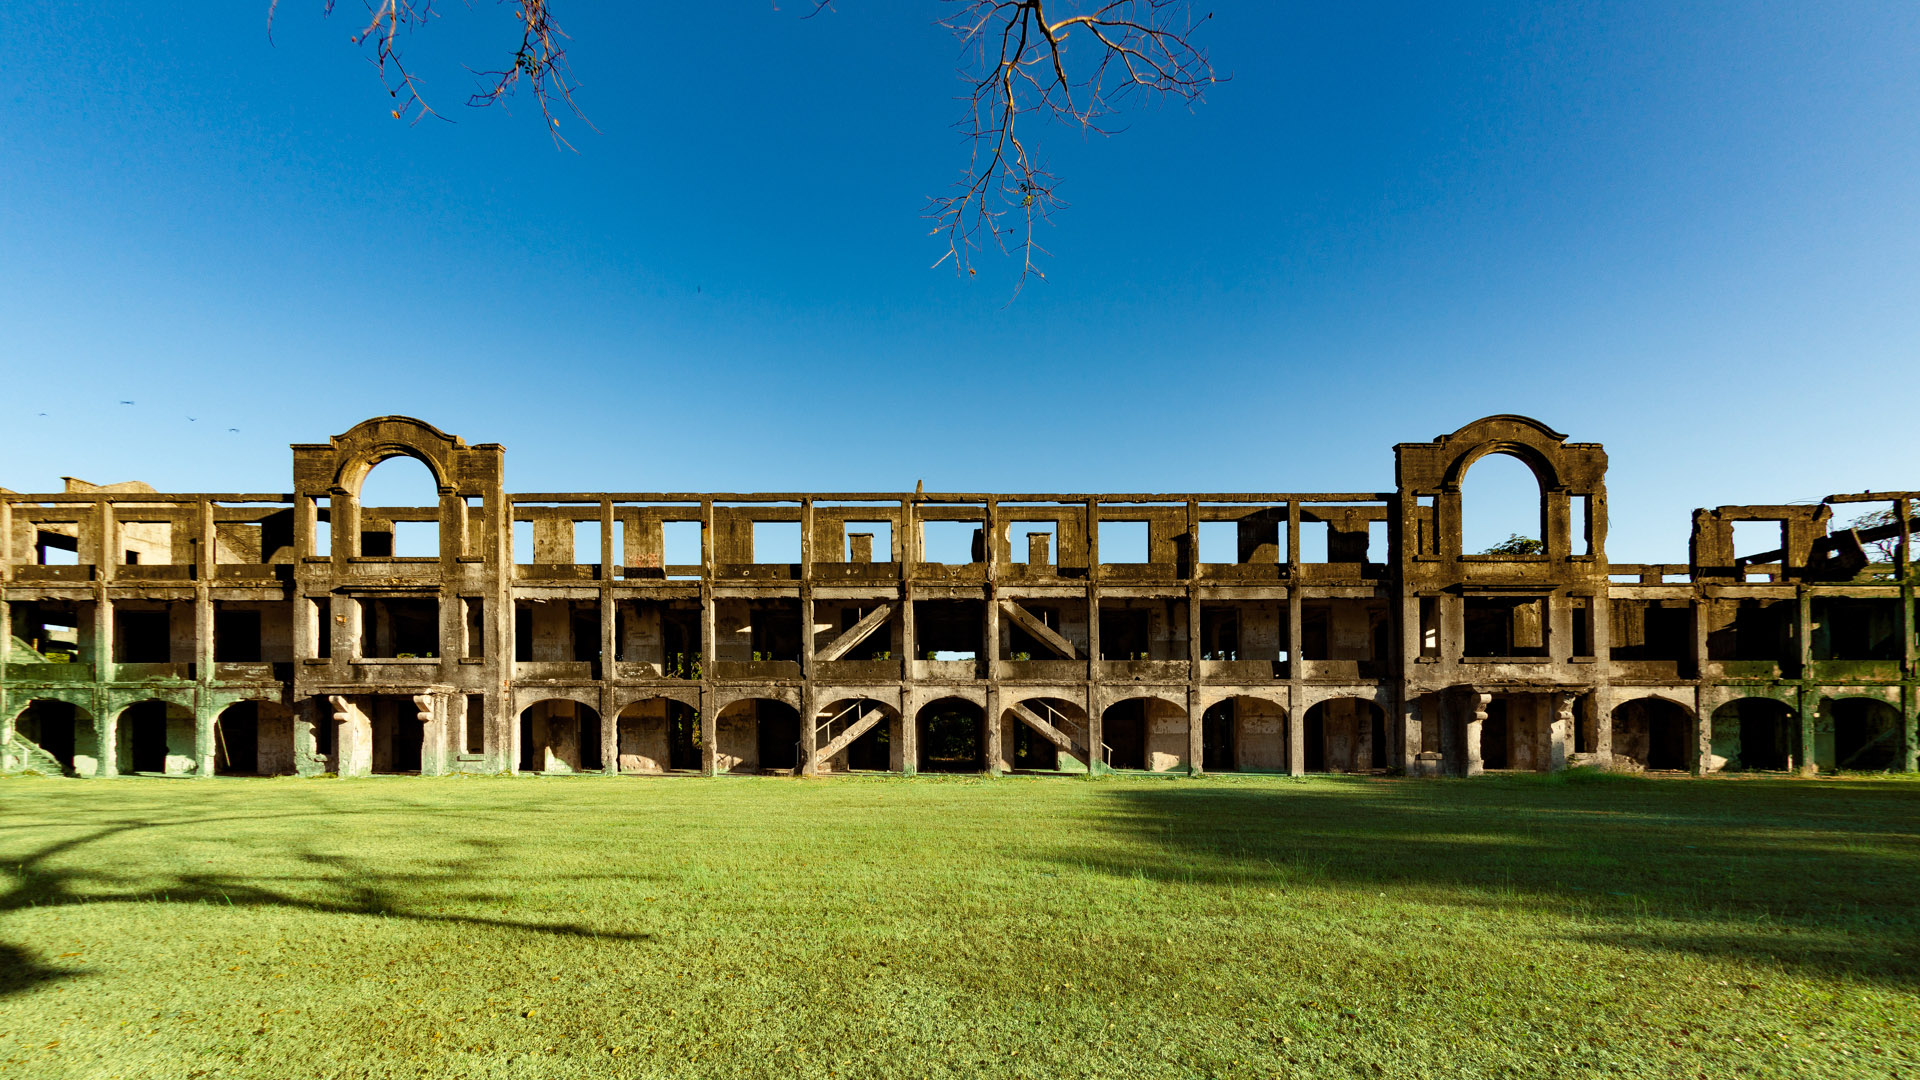 Ruins of the American hospital on Corregidor from World War II ©Kevin Ames